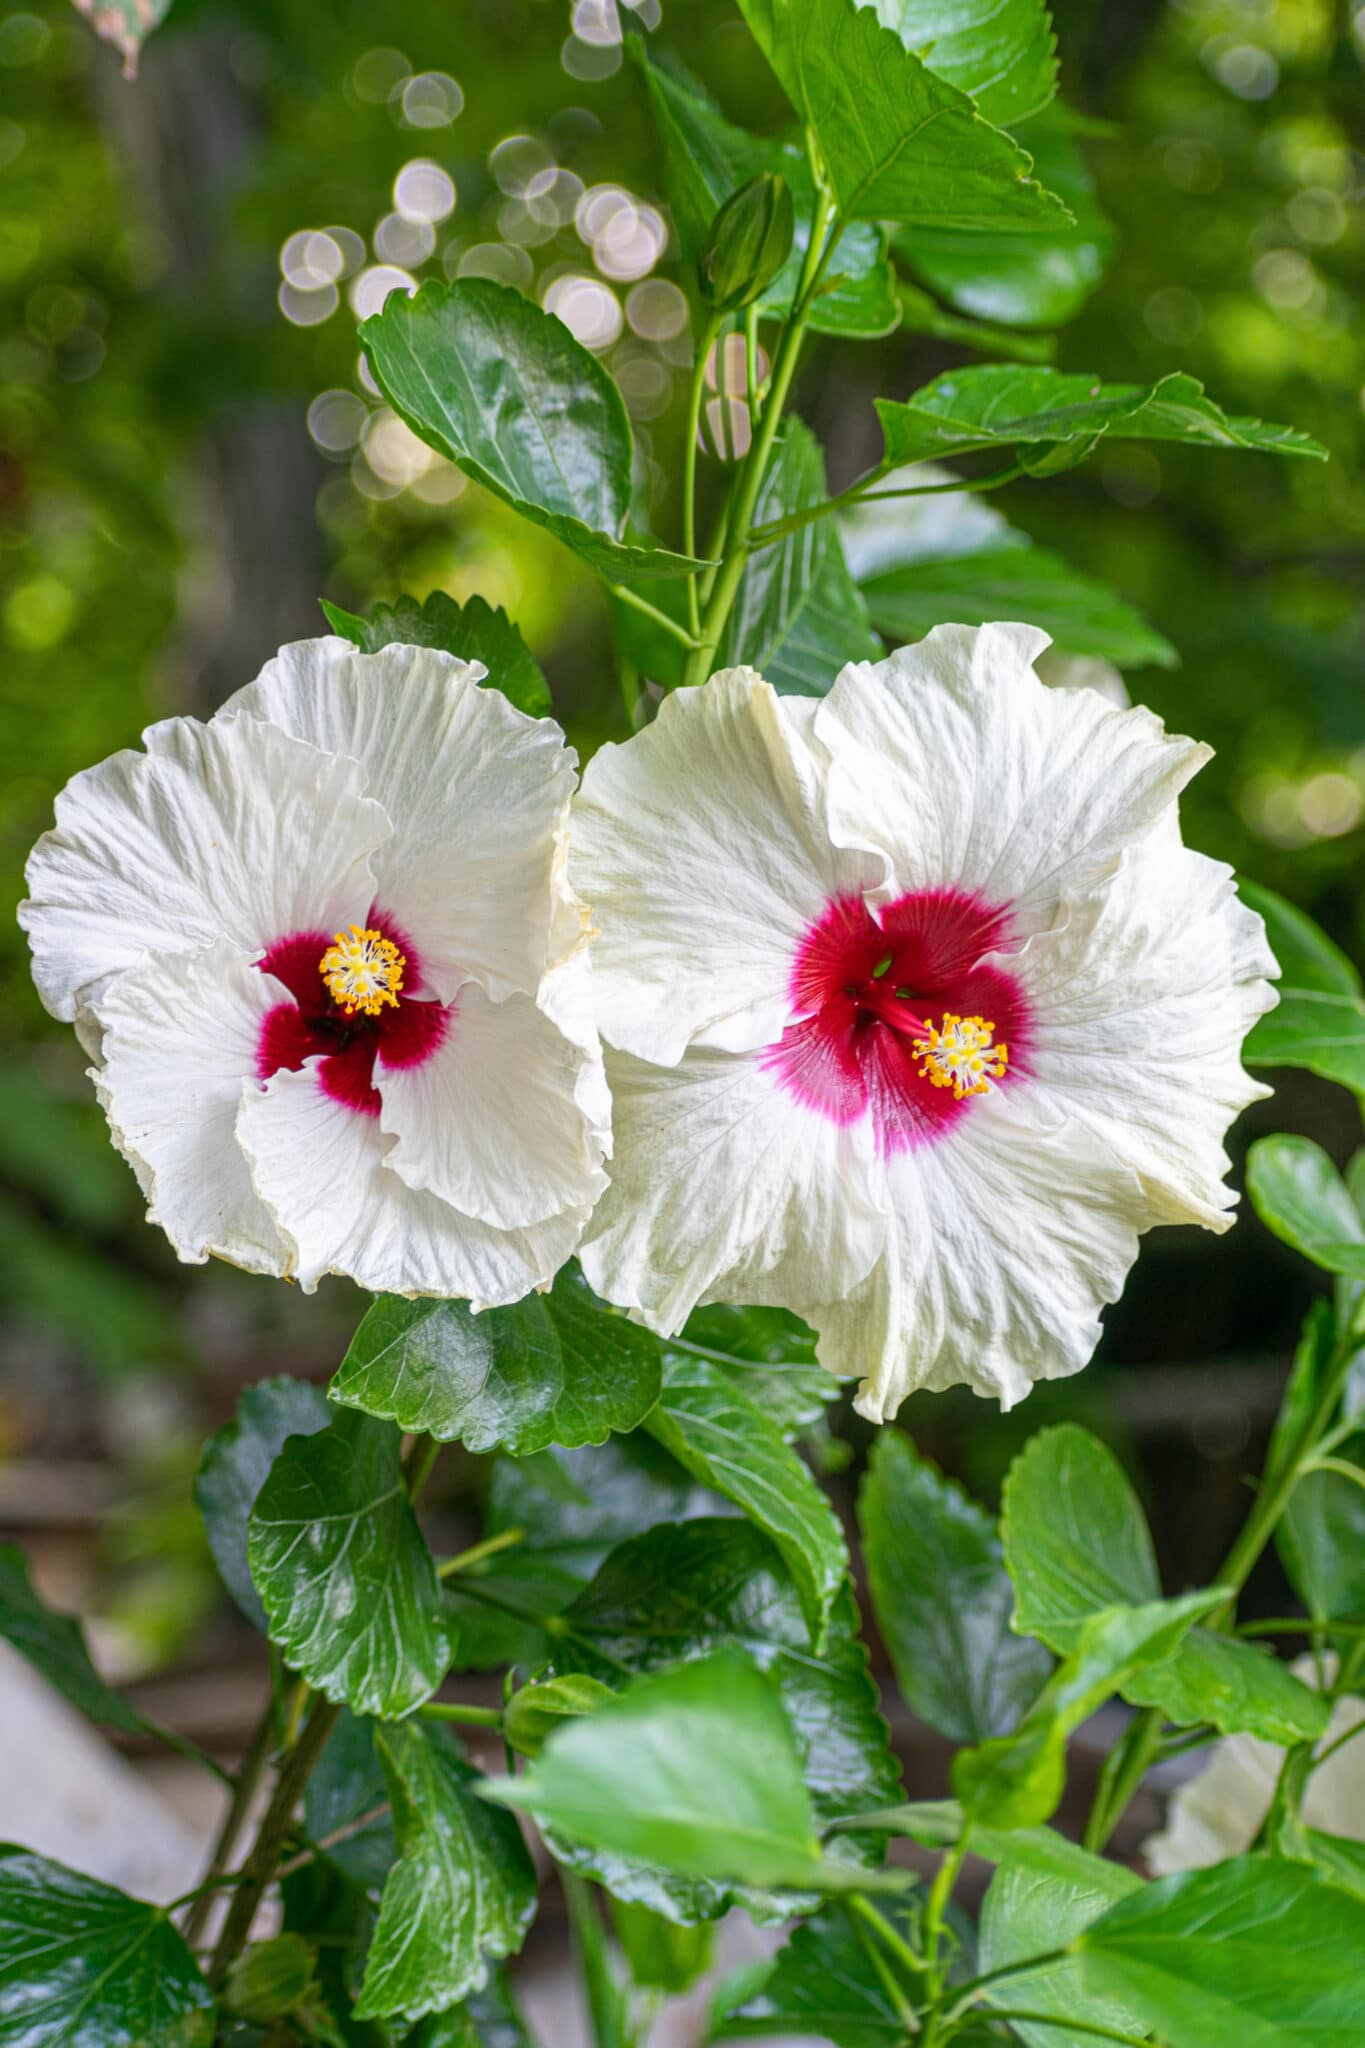 Rose of Sharon with bright white blooms and brilliant red centers against a dark moonlit garden.